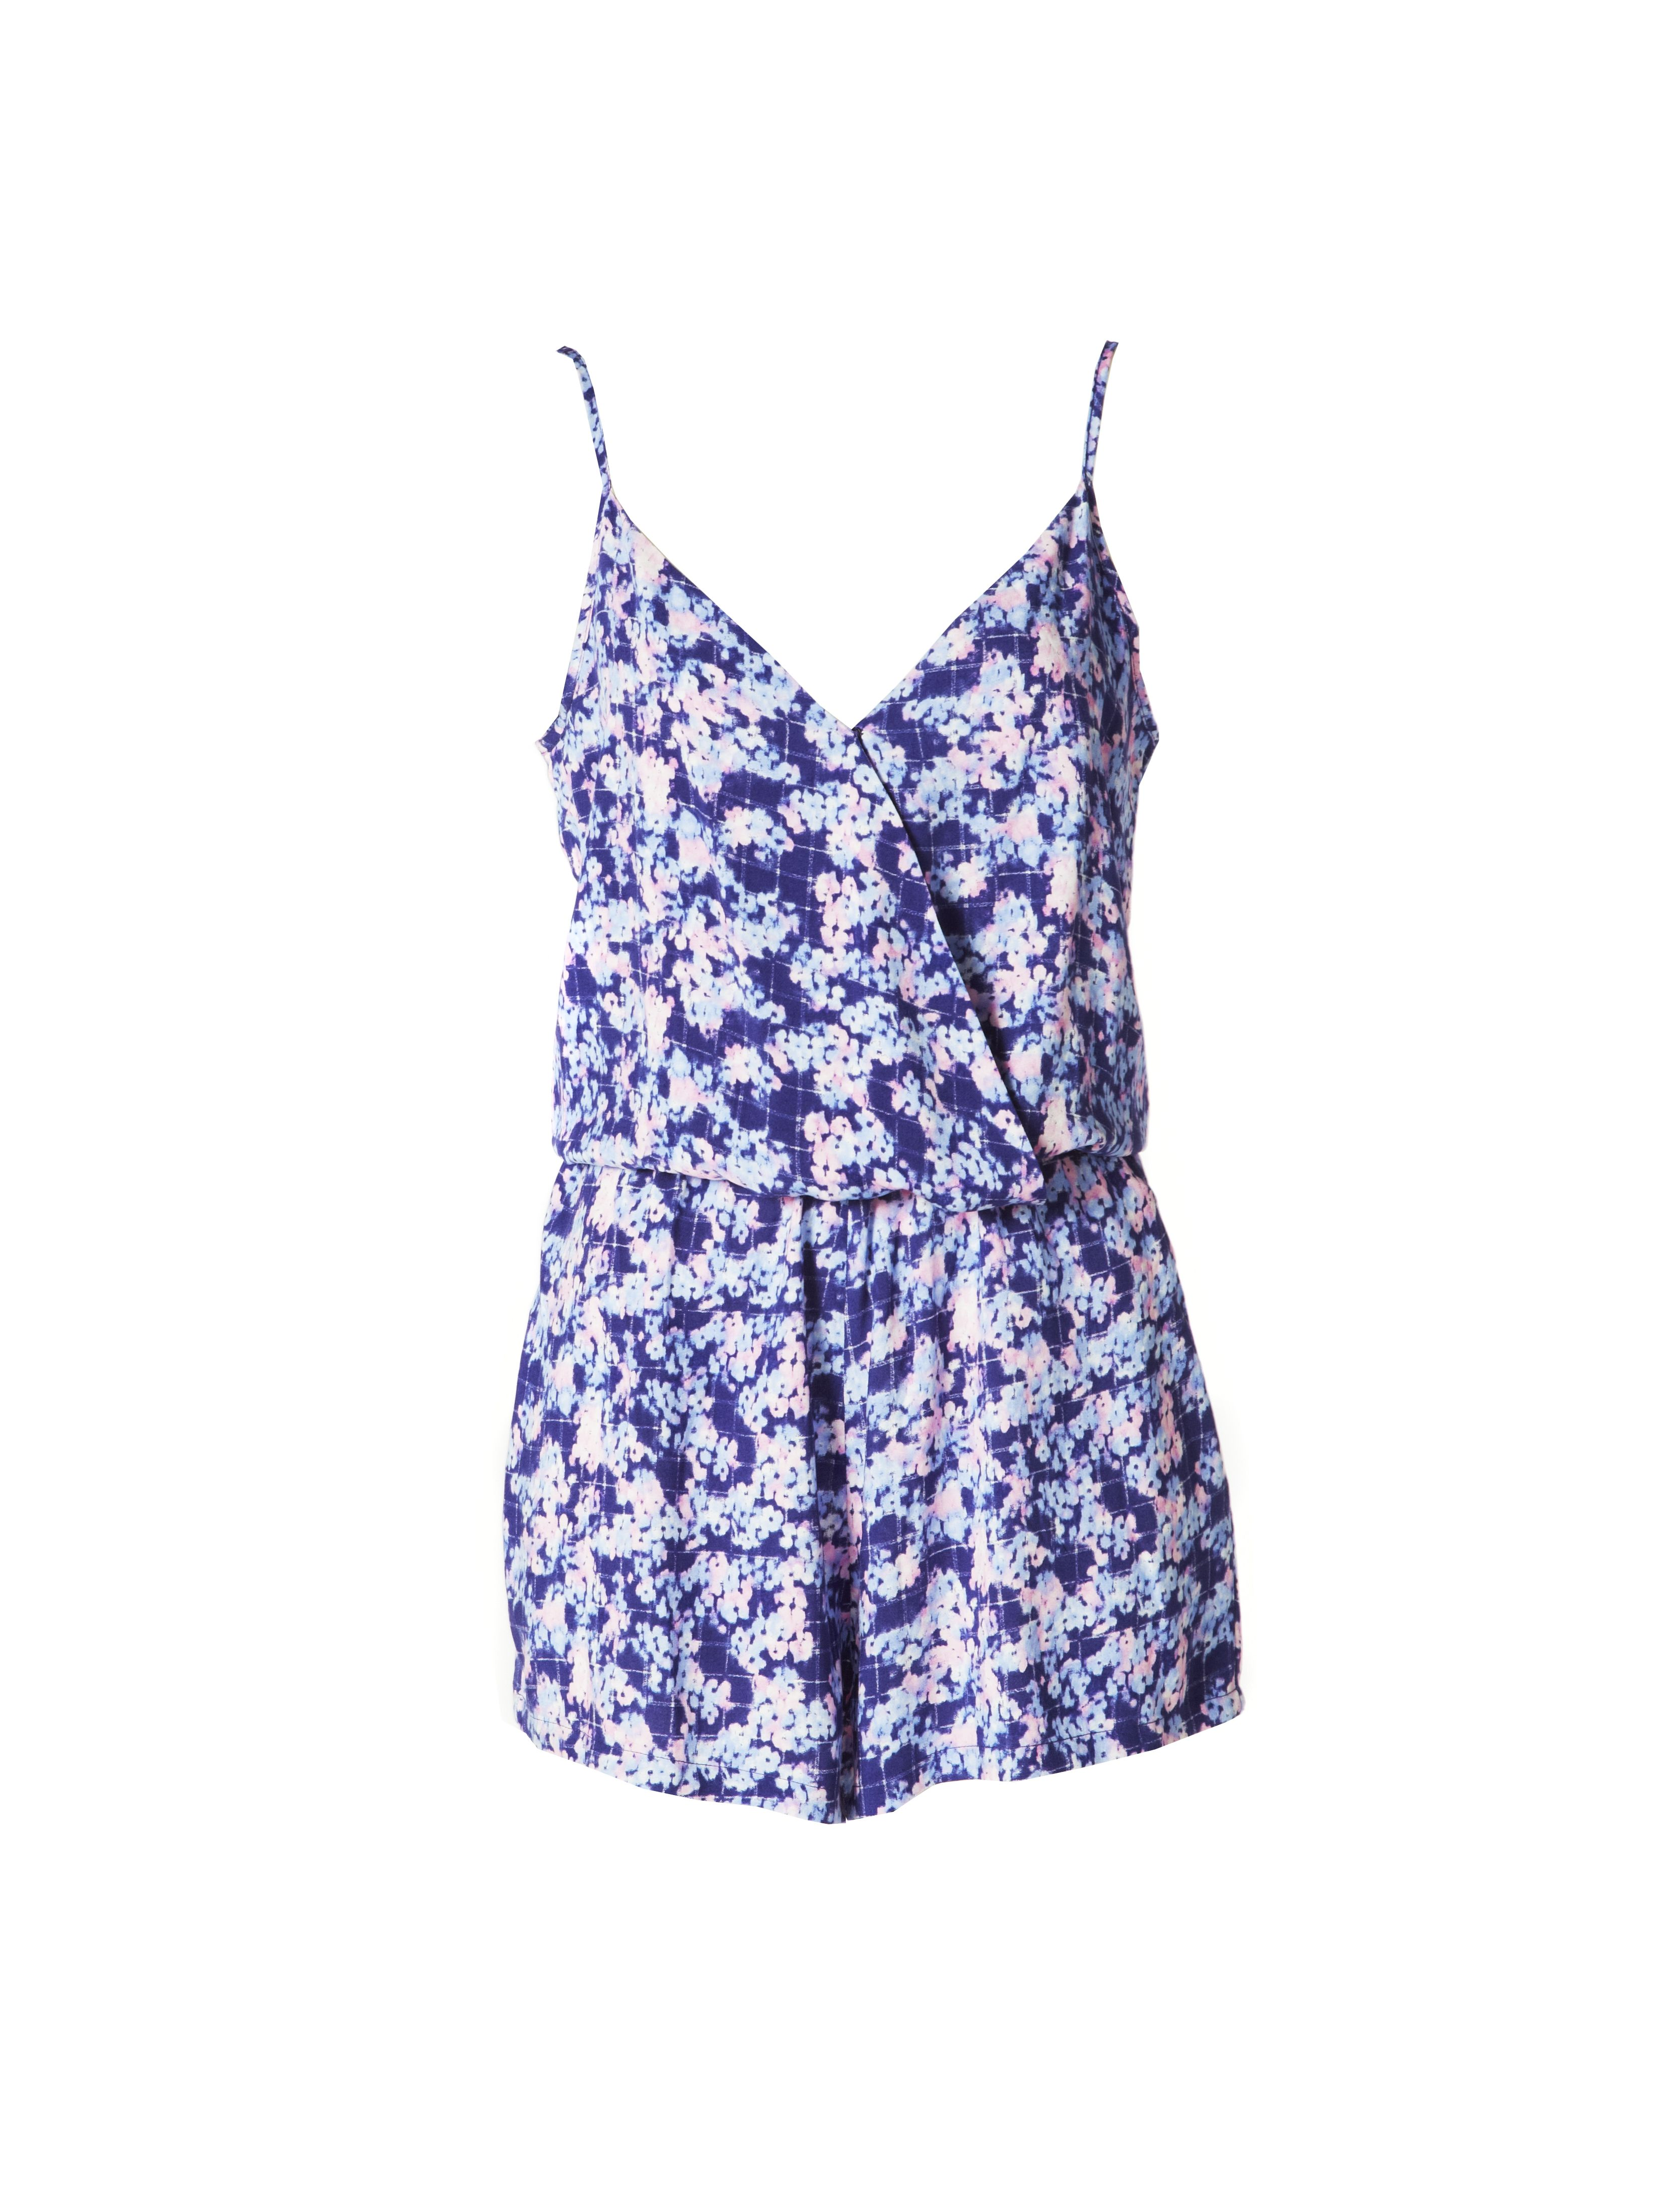 Playsuit from Glassons #floralgrunge @Westfield New Zealand ...